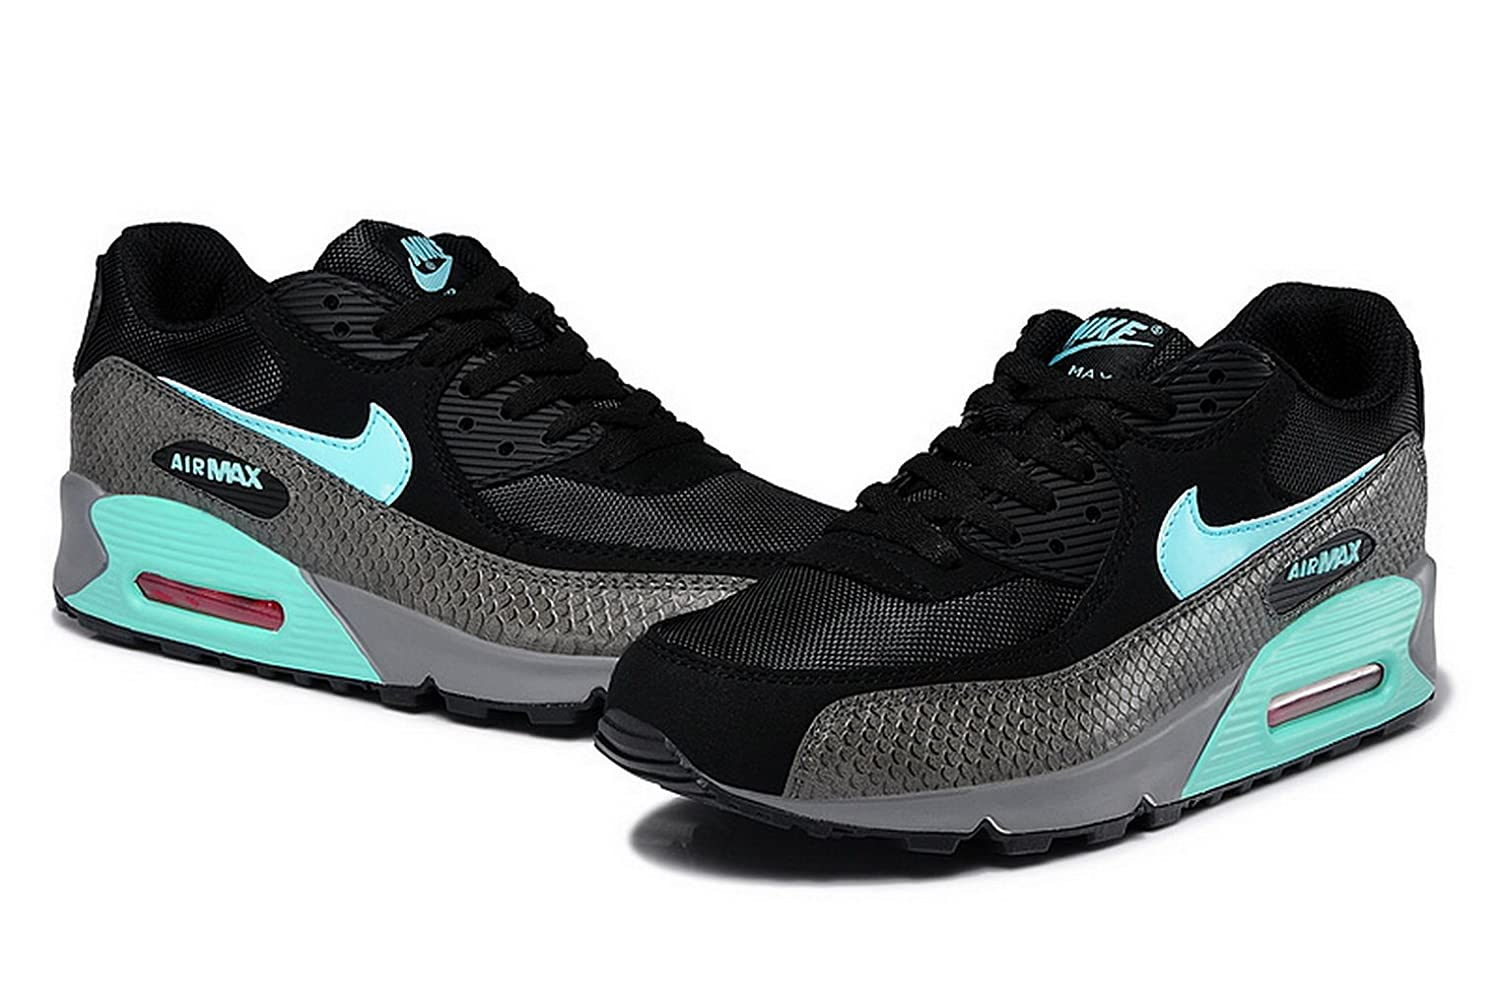 quality design 36601 b19bc Nike Women s AIR MAX 90 Running Shoes s qy090-43,The picture color, 5.5  D(M) US  Amazon.ca  Shoes   Handbags